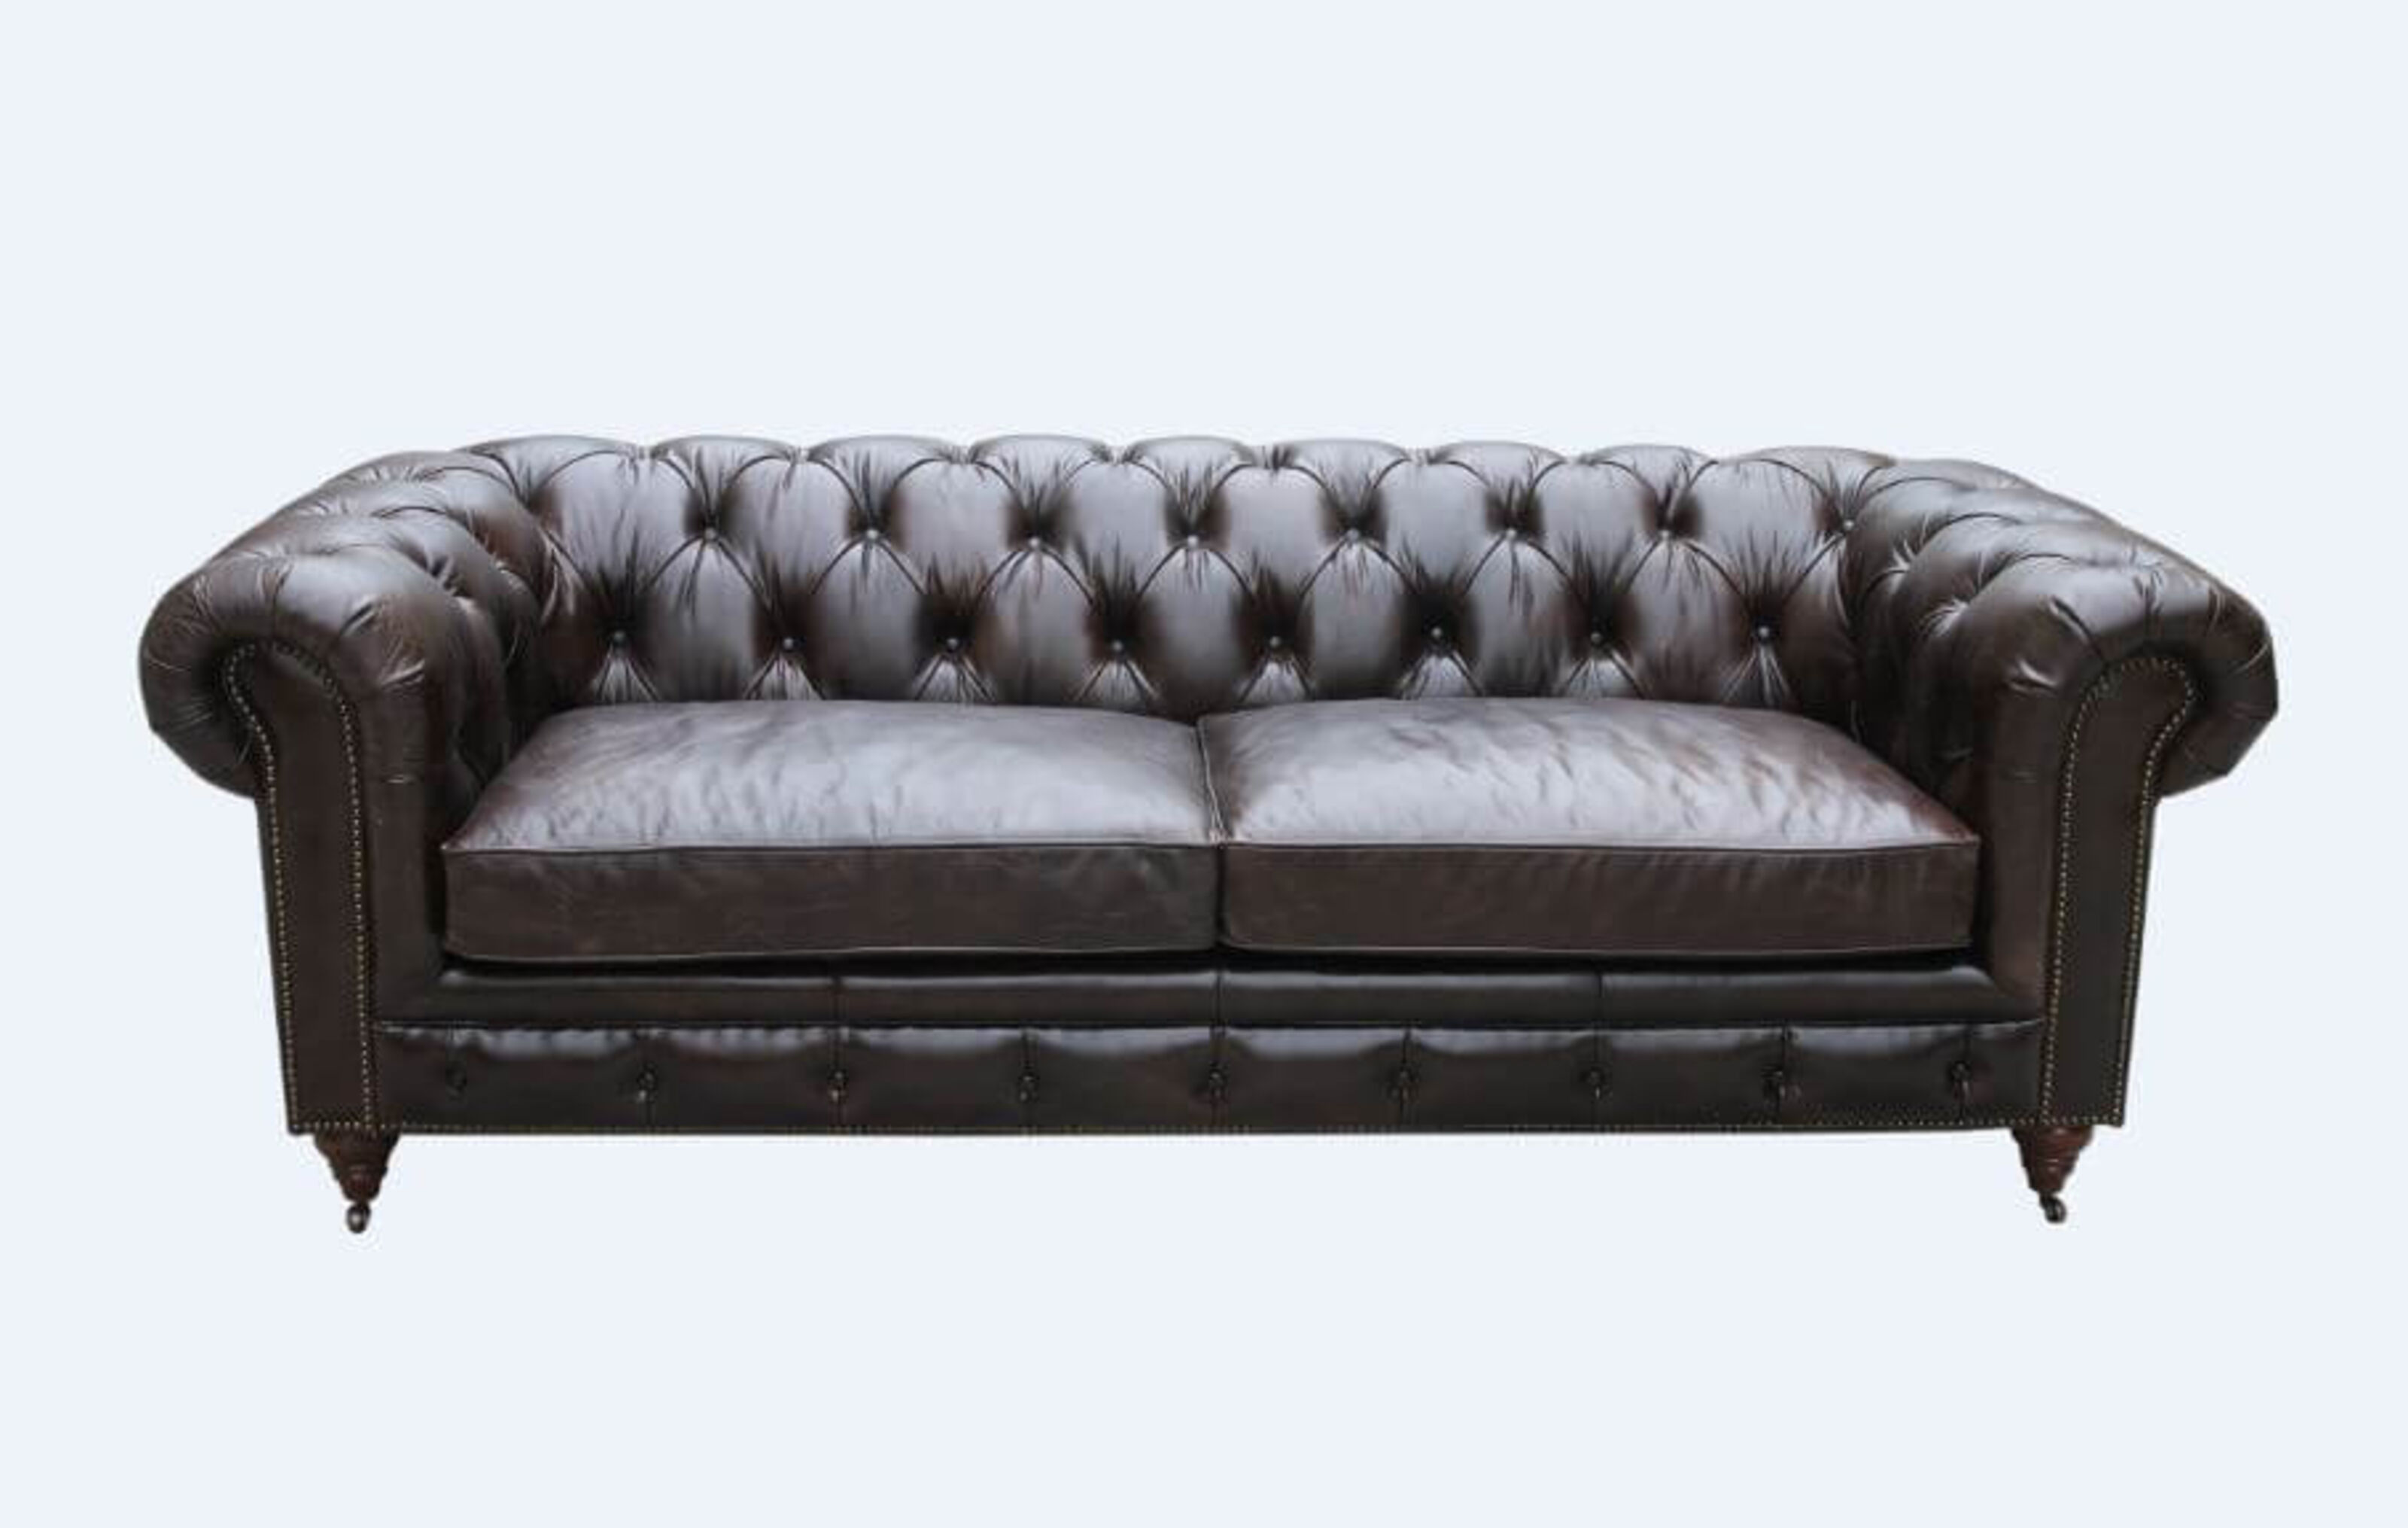 Vintage Distressed Leather Chesterfield 3 Seater Sofa Designer